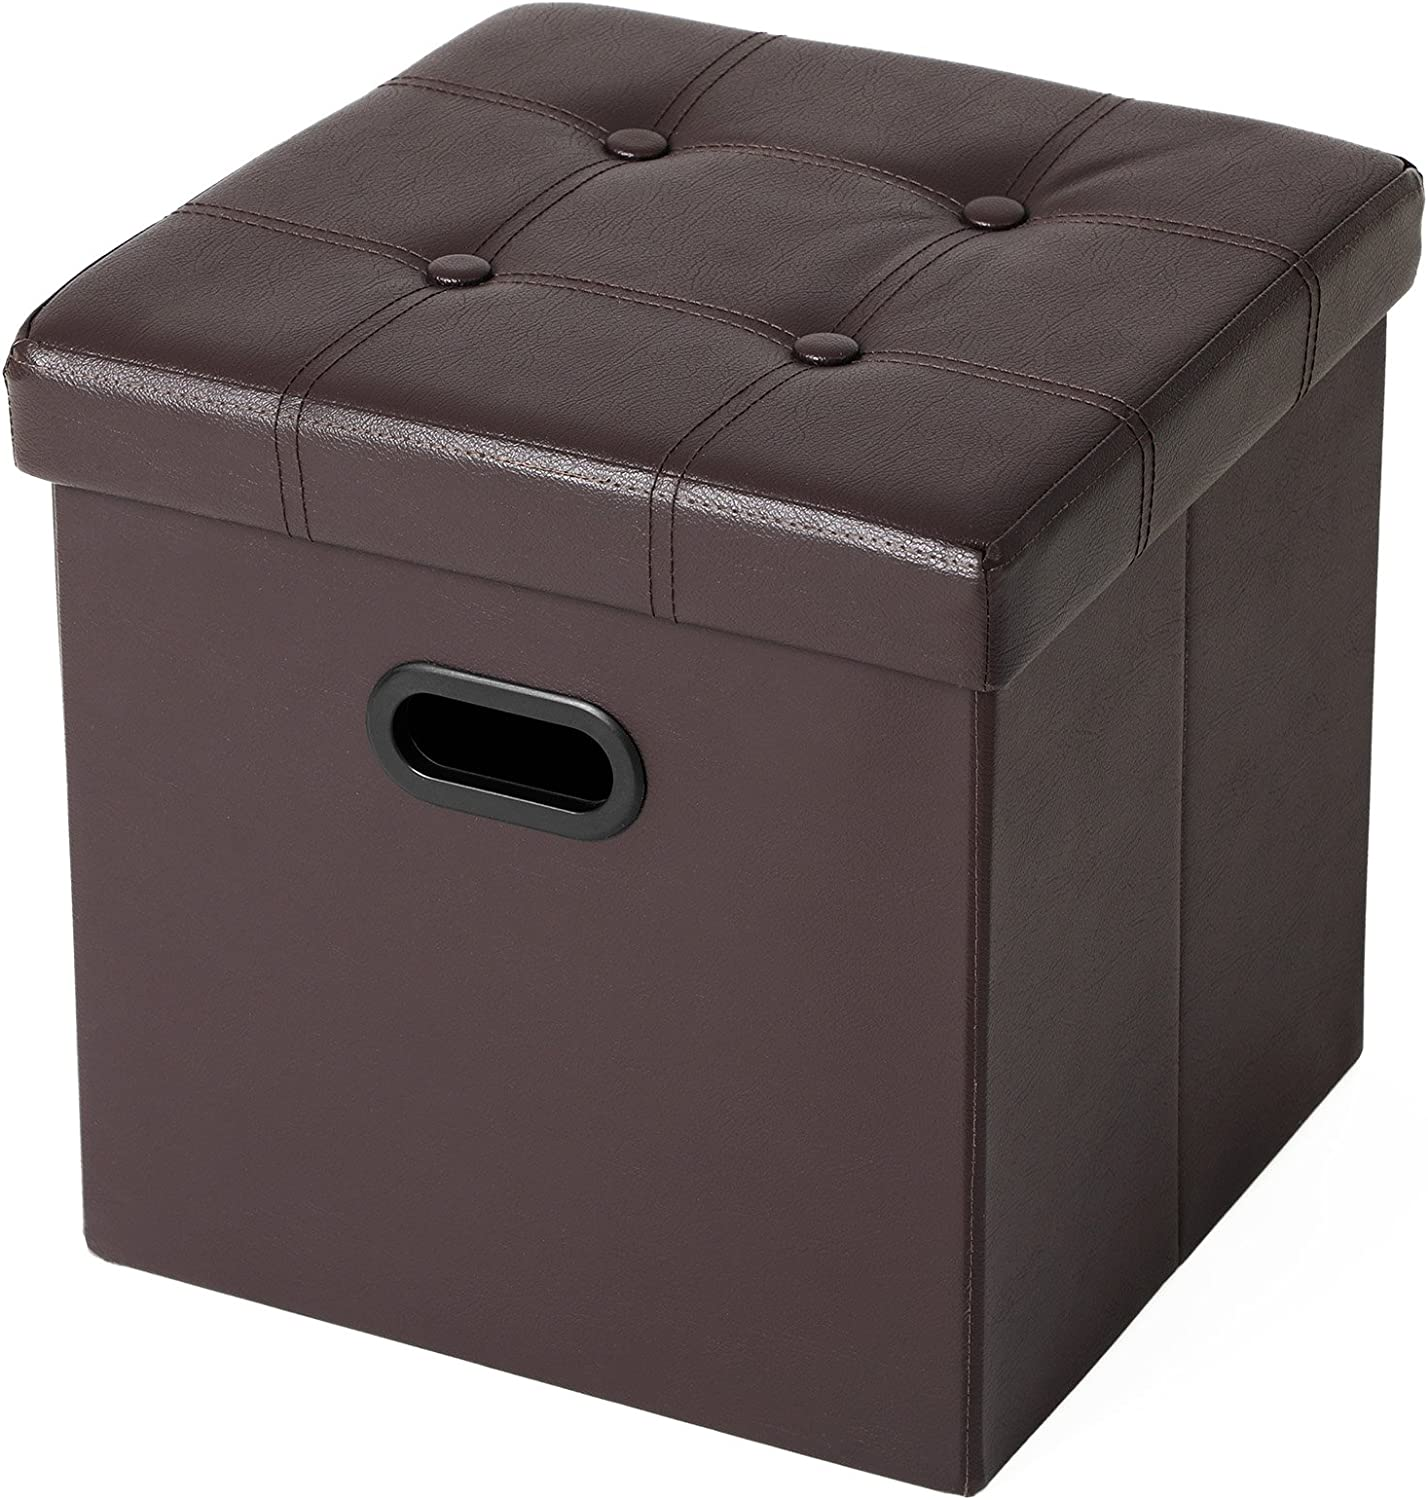 Songmics 15 X 15 X 15 Storage Ottoman Cube Footrest Stool Puppy Step Coffee Table With Hole Handle Holds Up To 660lbs Faux Leather Brown 15 Furniture Decor